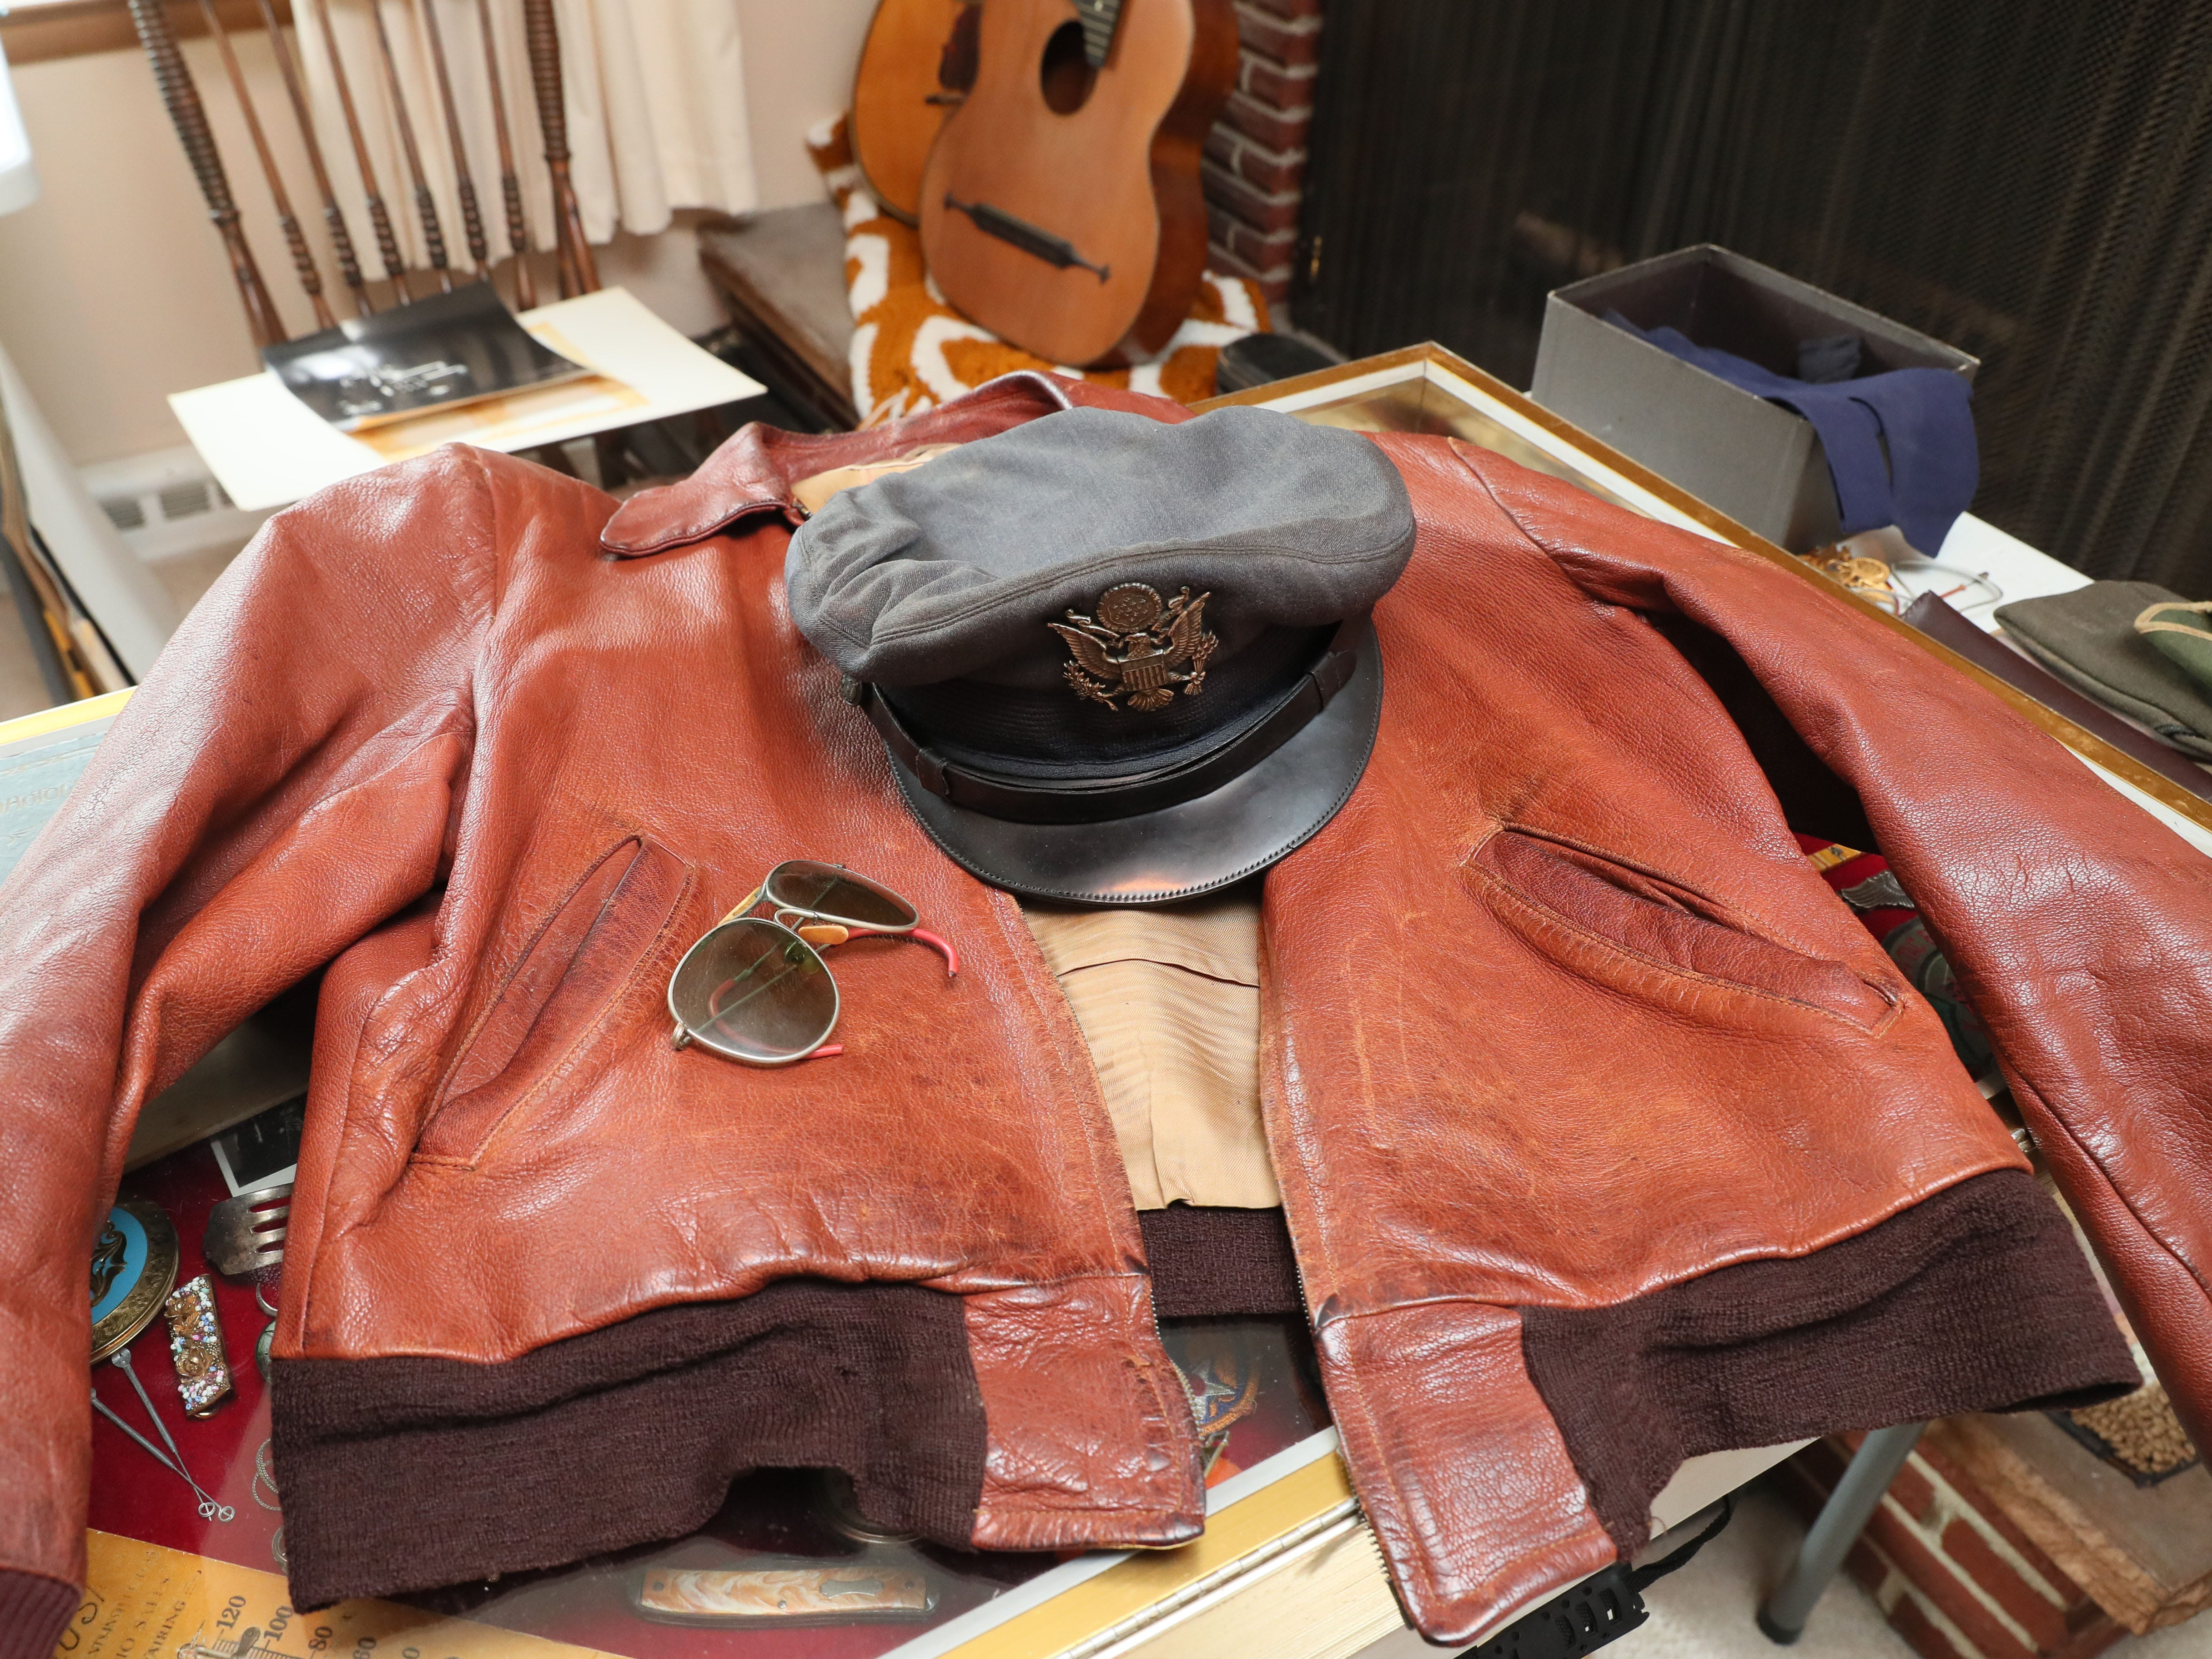 A World War II-style flight jacket is among the items being sorted through for the estate sale.